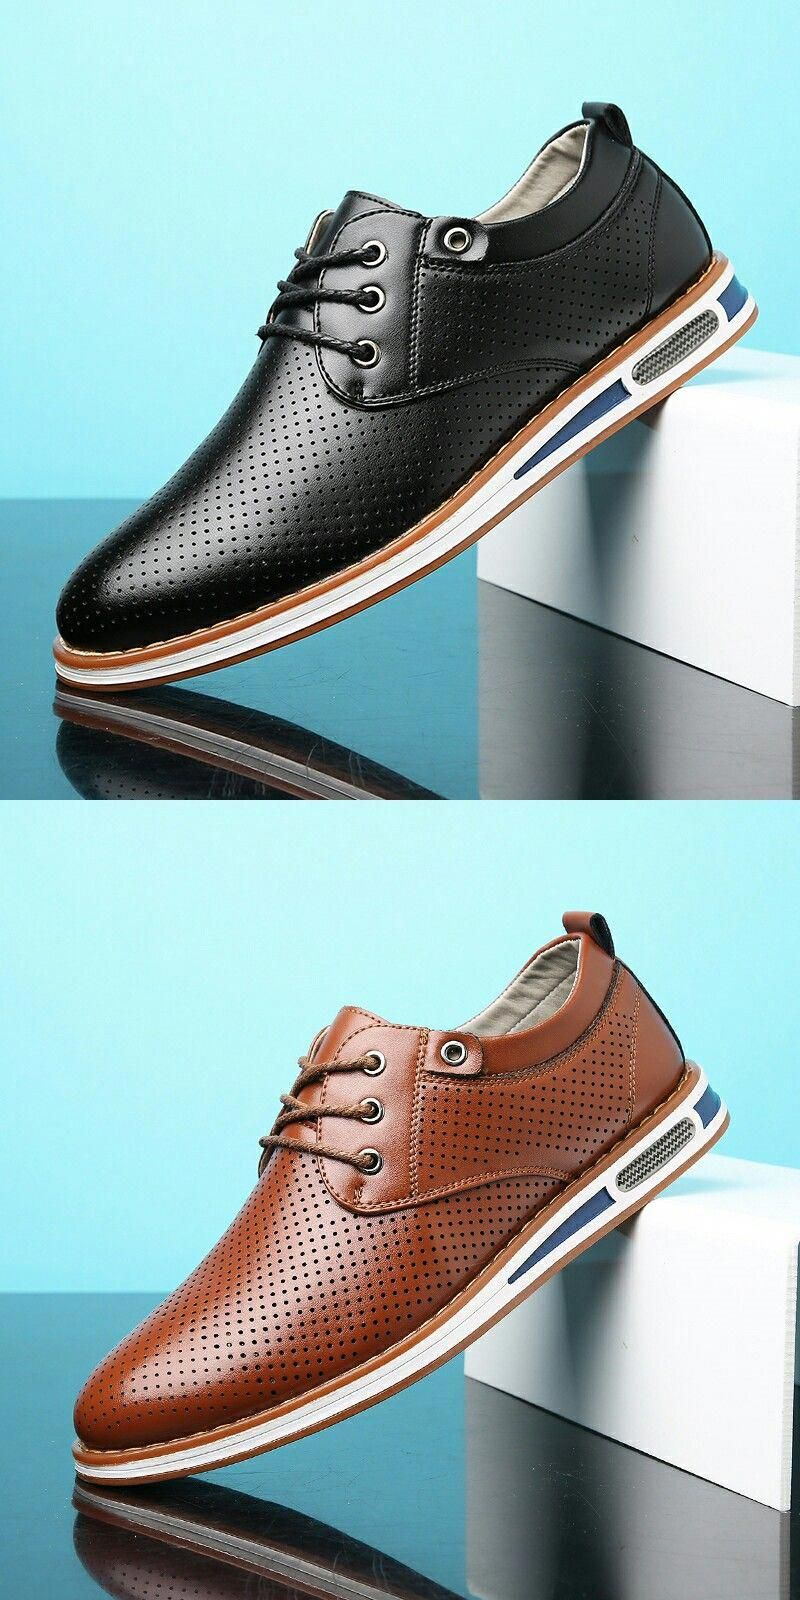 LL Mens Business Shoes Smooth PU Leather Splice Upper Lace Up Breathable Mesh Oxfords Fashion Slipper